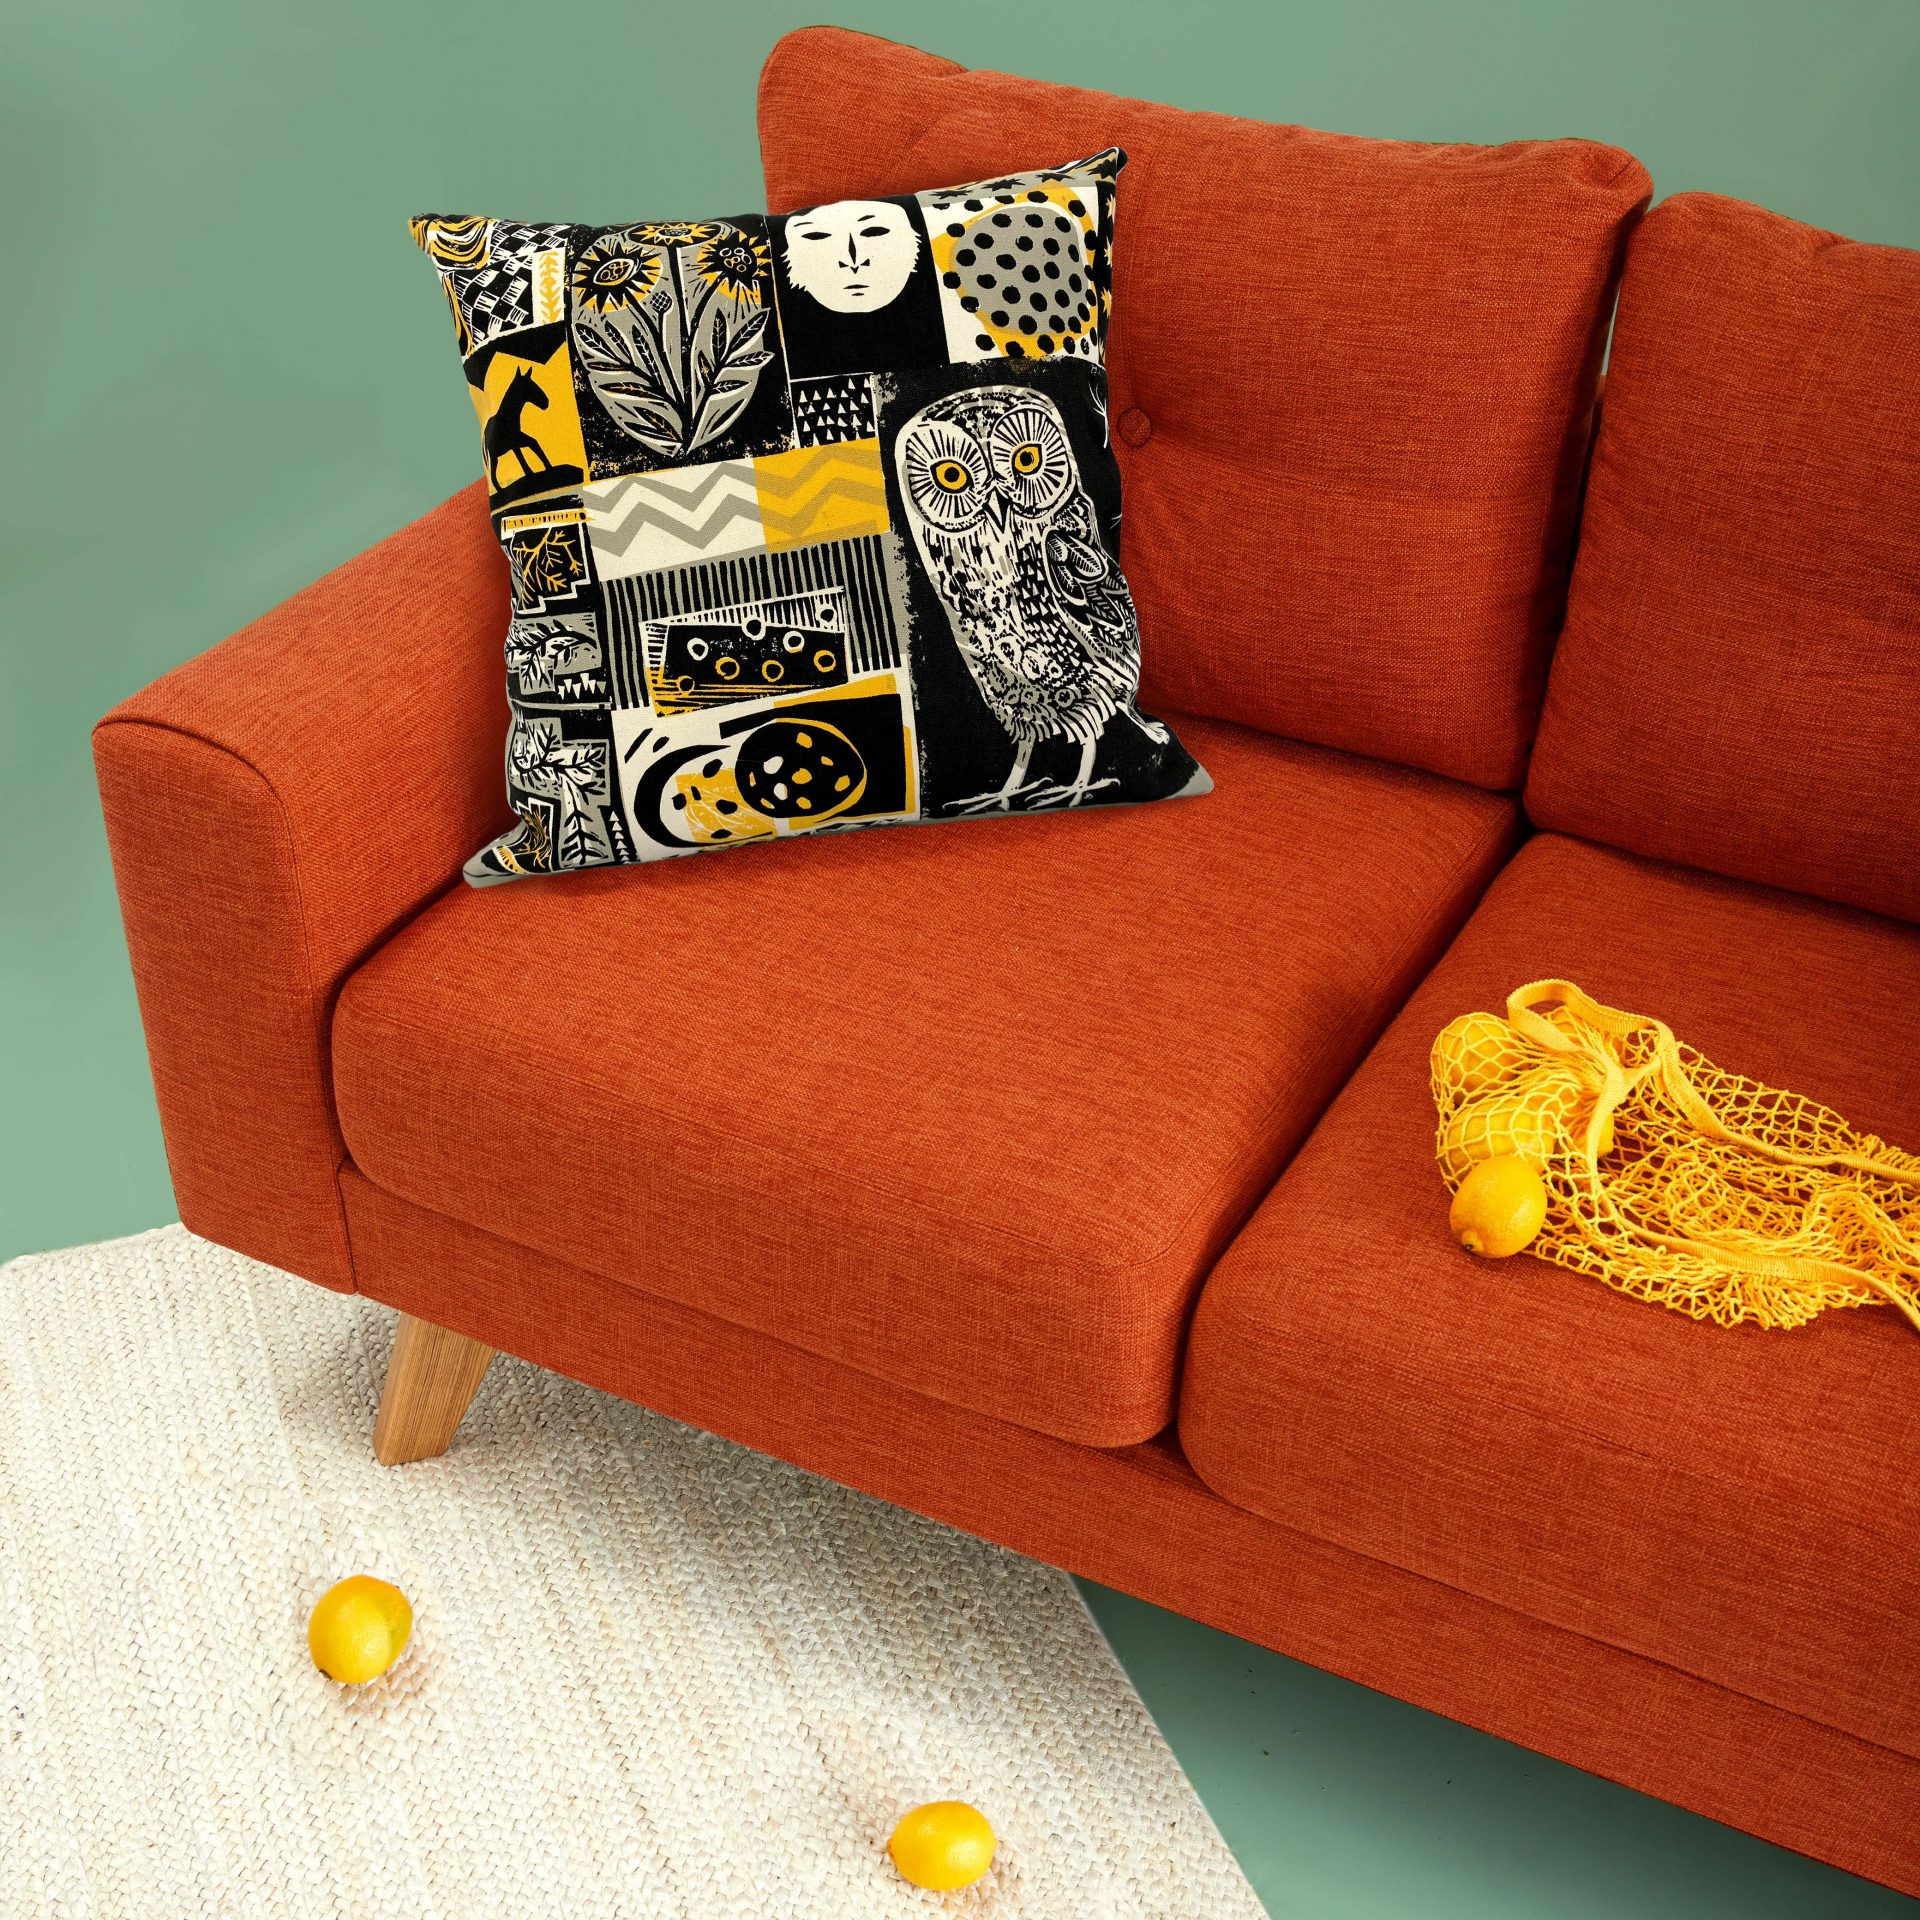 Screen printed merchandise cushion cover by Pul Bristow designed by Mark Herald for Tate